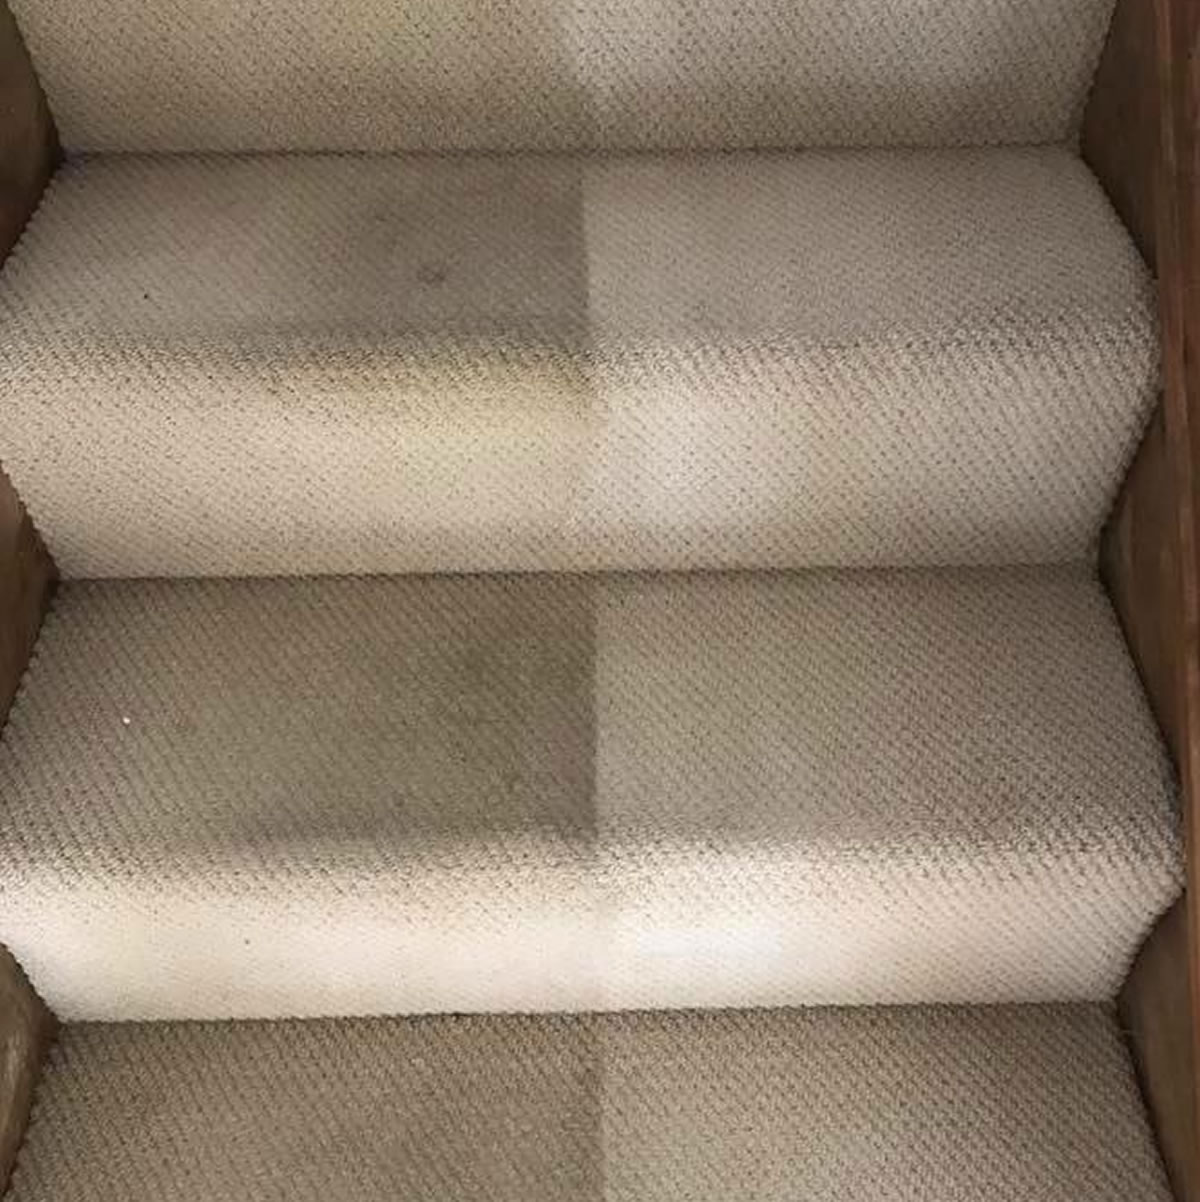 stairs carpet cleaning before after